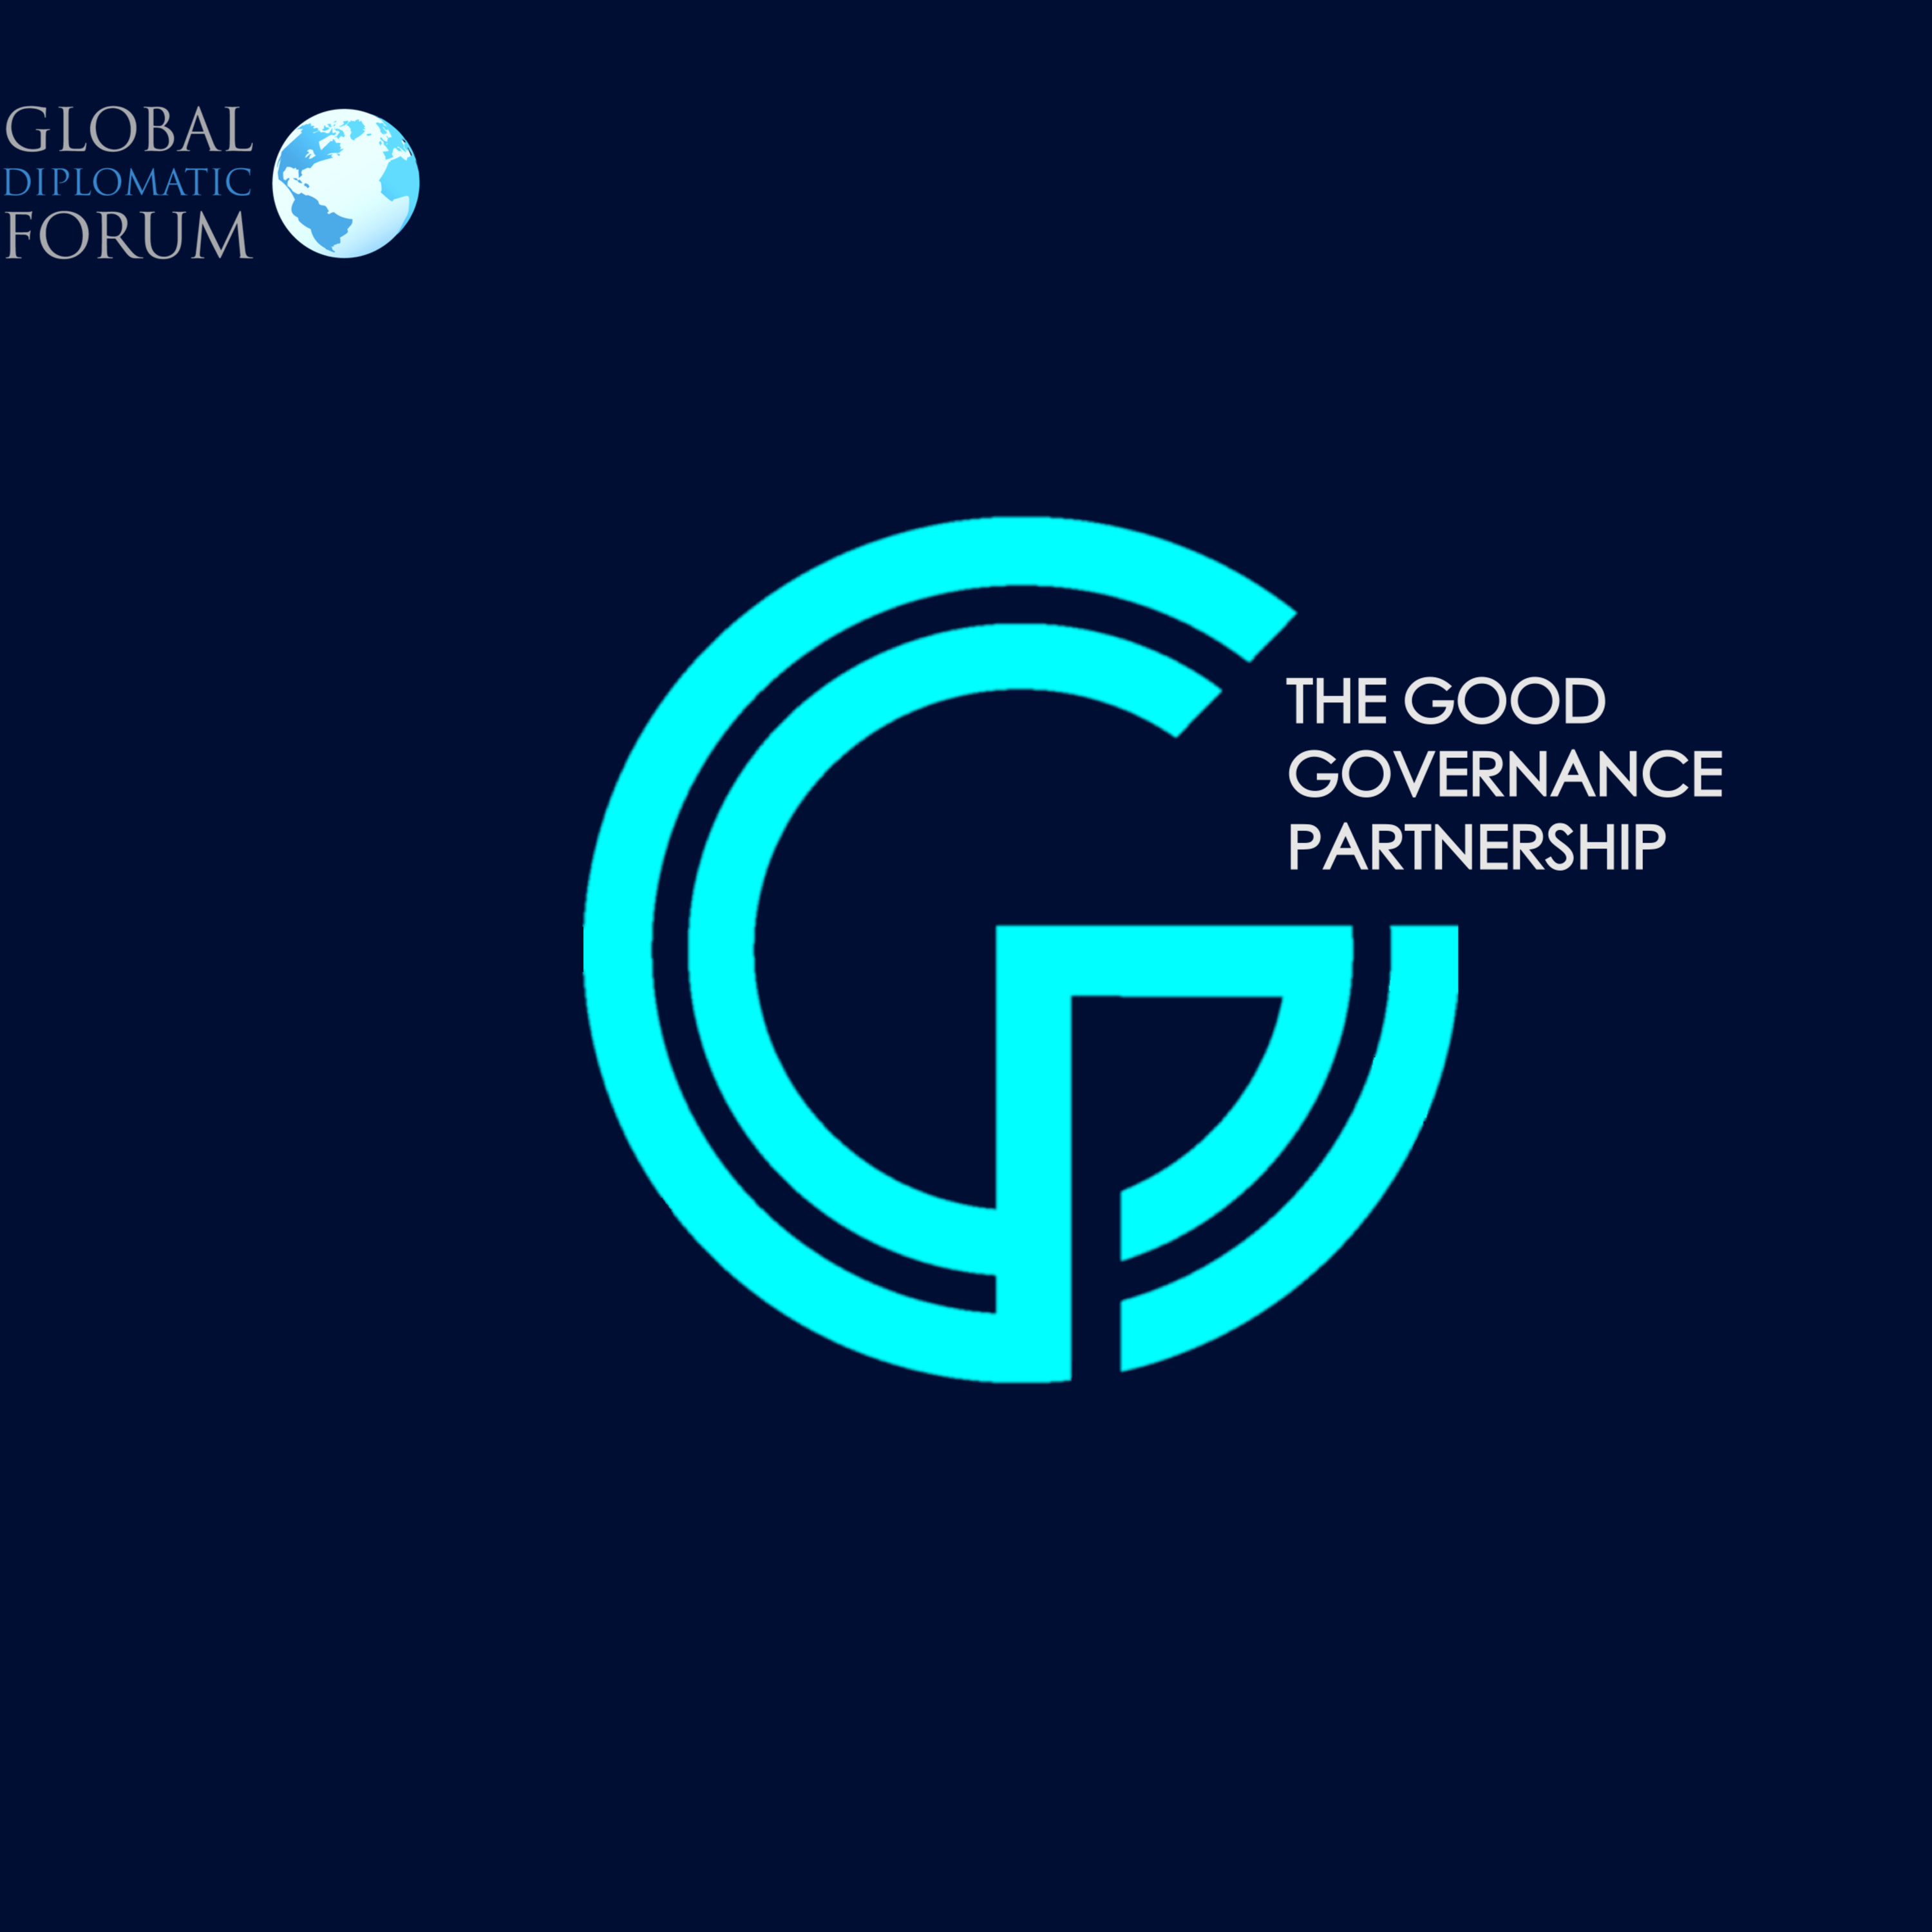 Introduction to the Good Governance Partnership